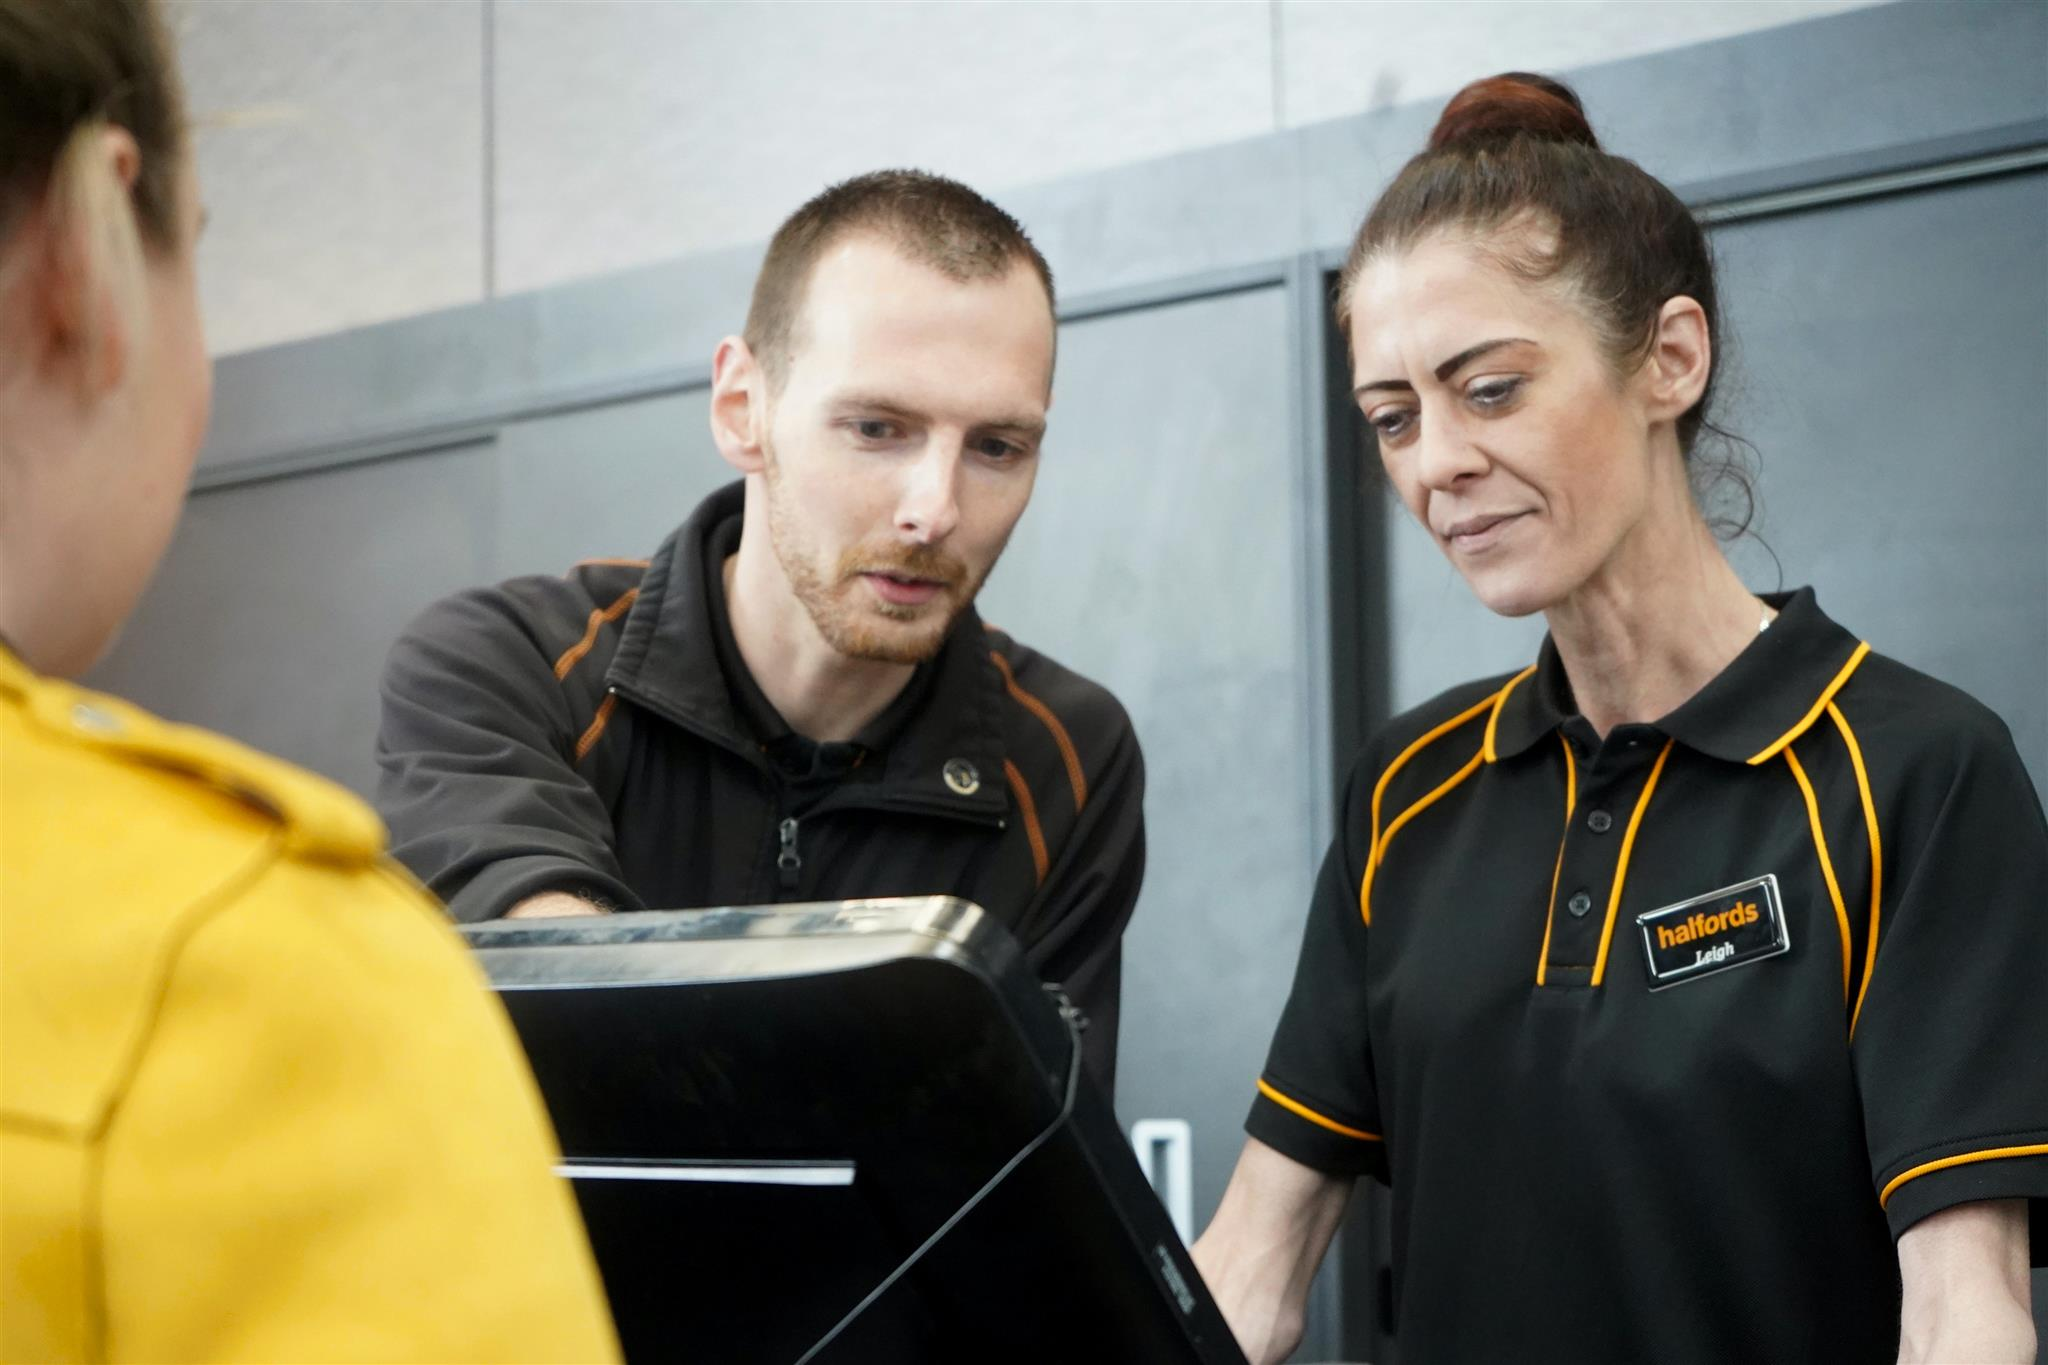 Ex-offender serving a customer in a Halfords shop.